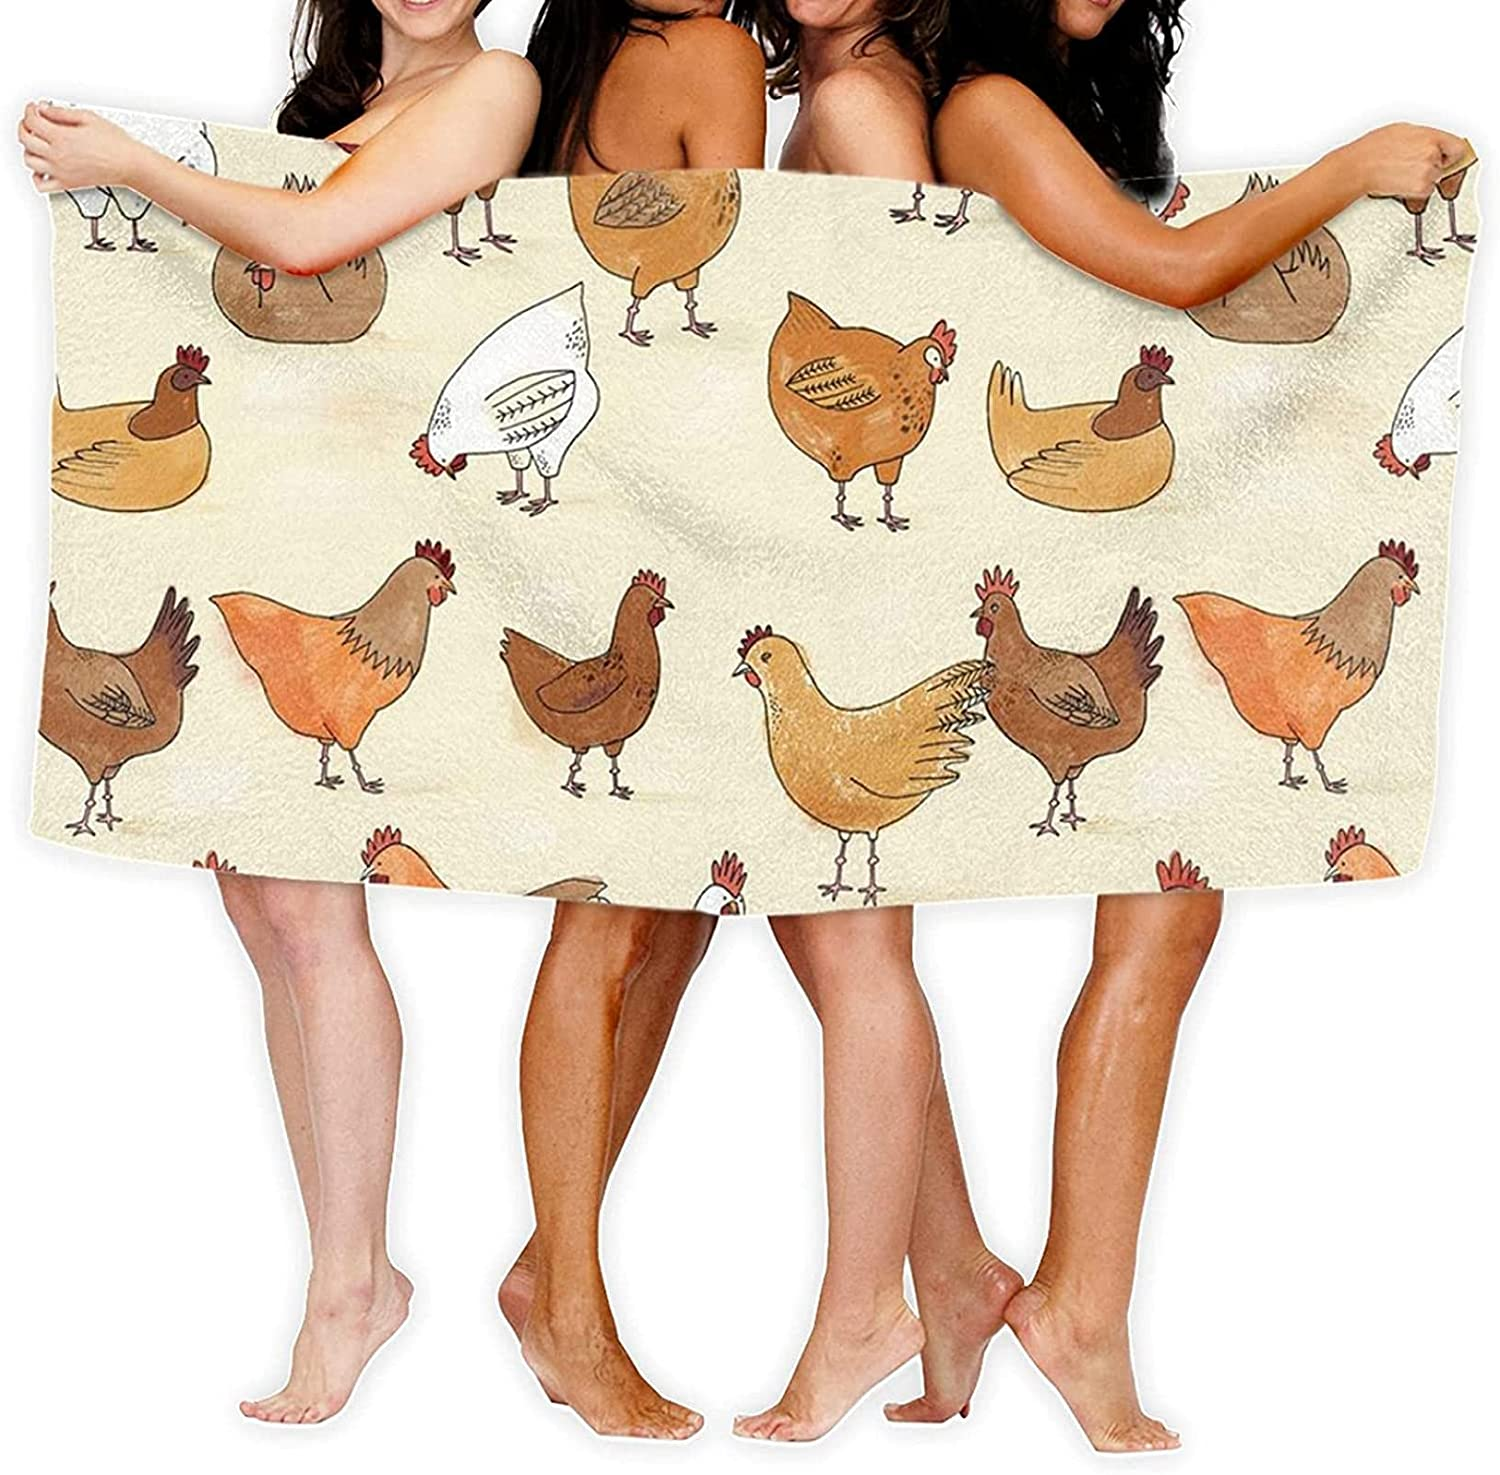 Epushow Chicken Pattern Don't miss the campaign Printed Beach Qui Super Max 82% OFF Towel Absorbent